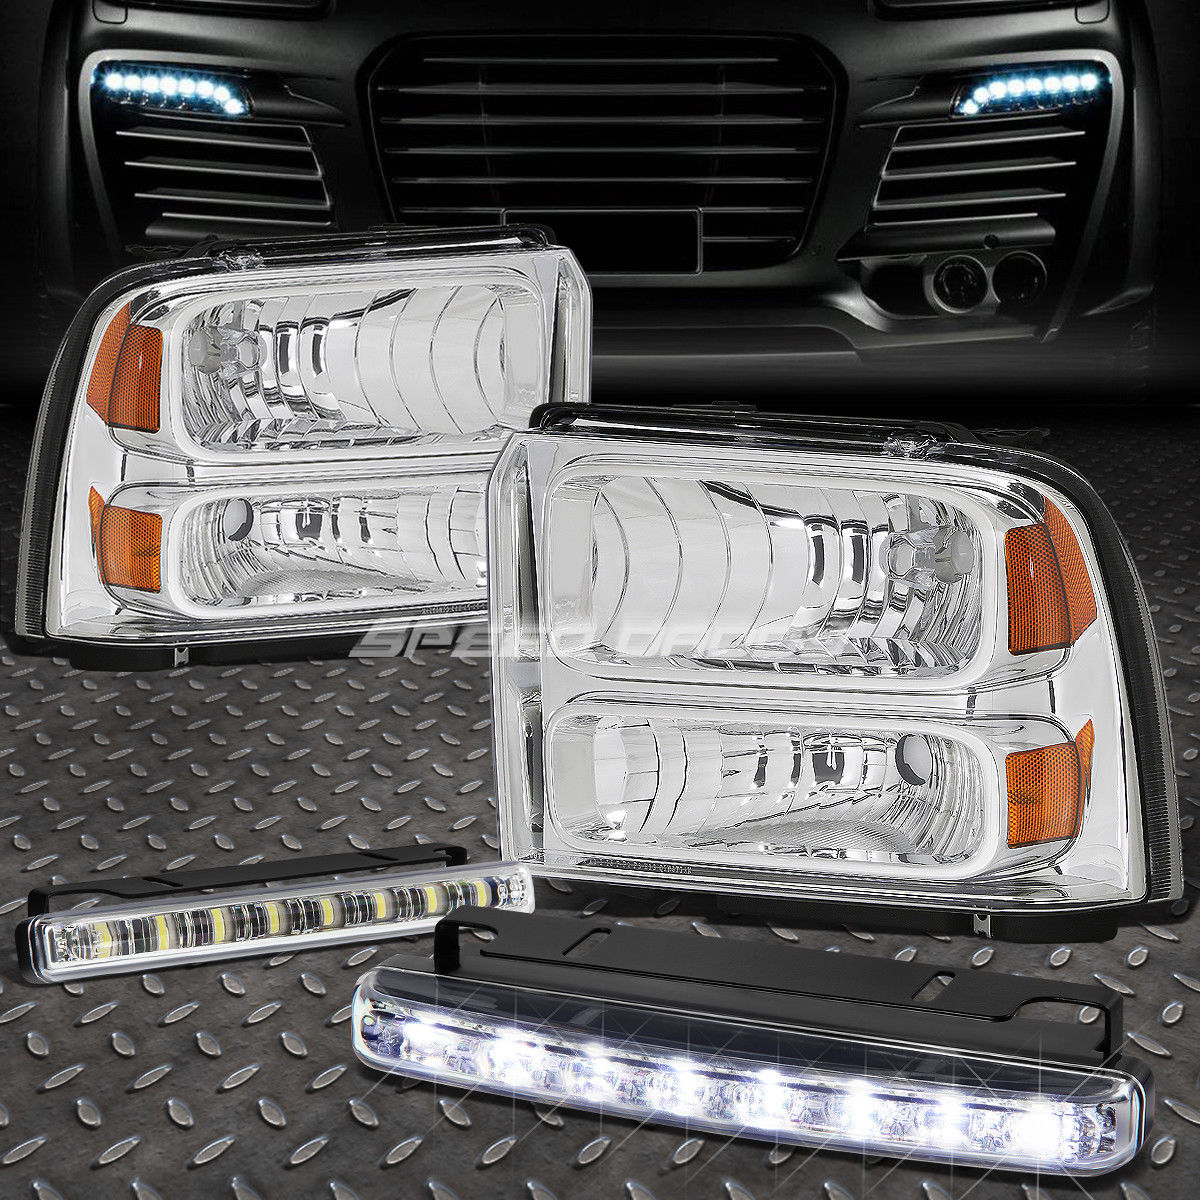 フォグライト CHROME LENS HEADLIGHT AMBER CORNER+8 LED GRILL FOG LIGHT FOR 05-07 SUPERDUTY CHROME LENS HEADLIGHTアンバーコーナー+ 05-07スーパーライト用8 LEDグリルフォグライト